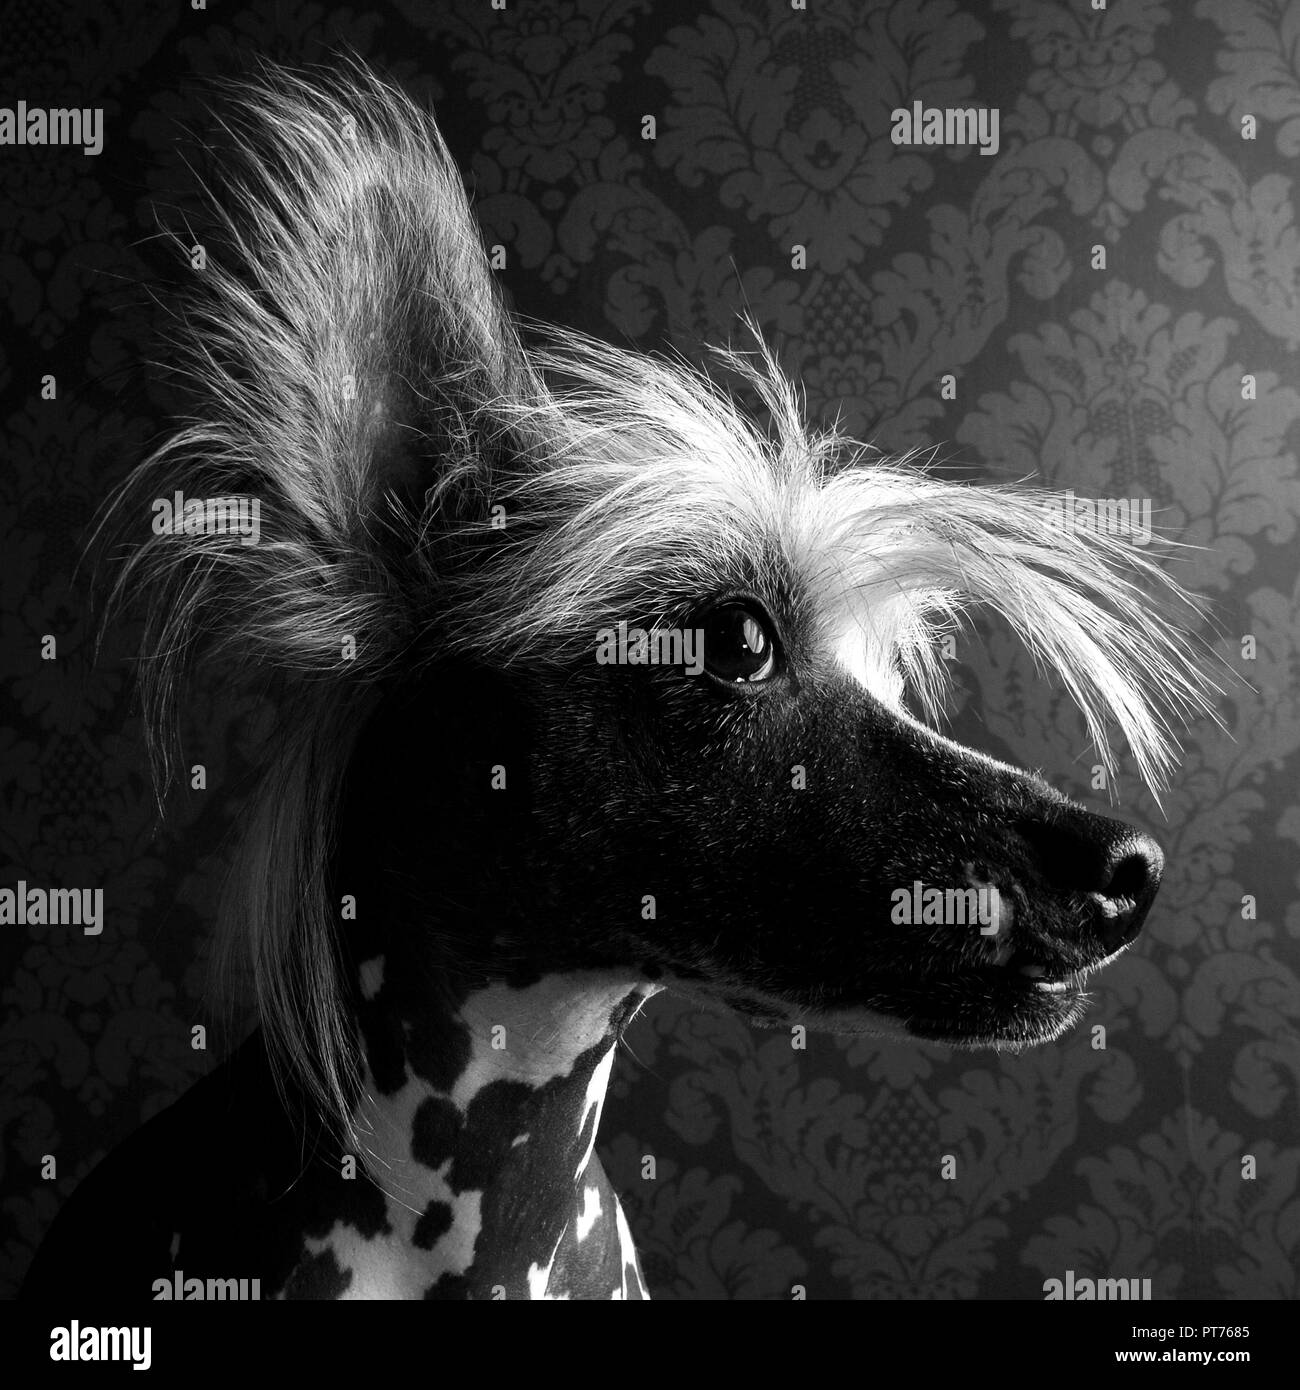 Chinese crested dog head portrait indor - Stock Image